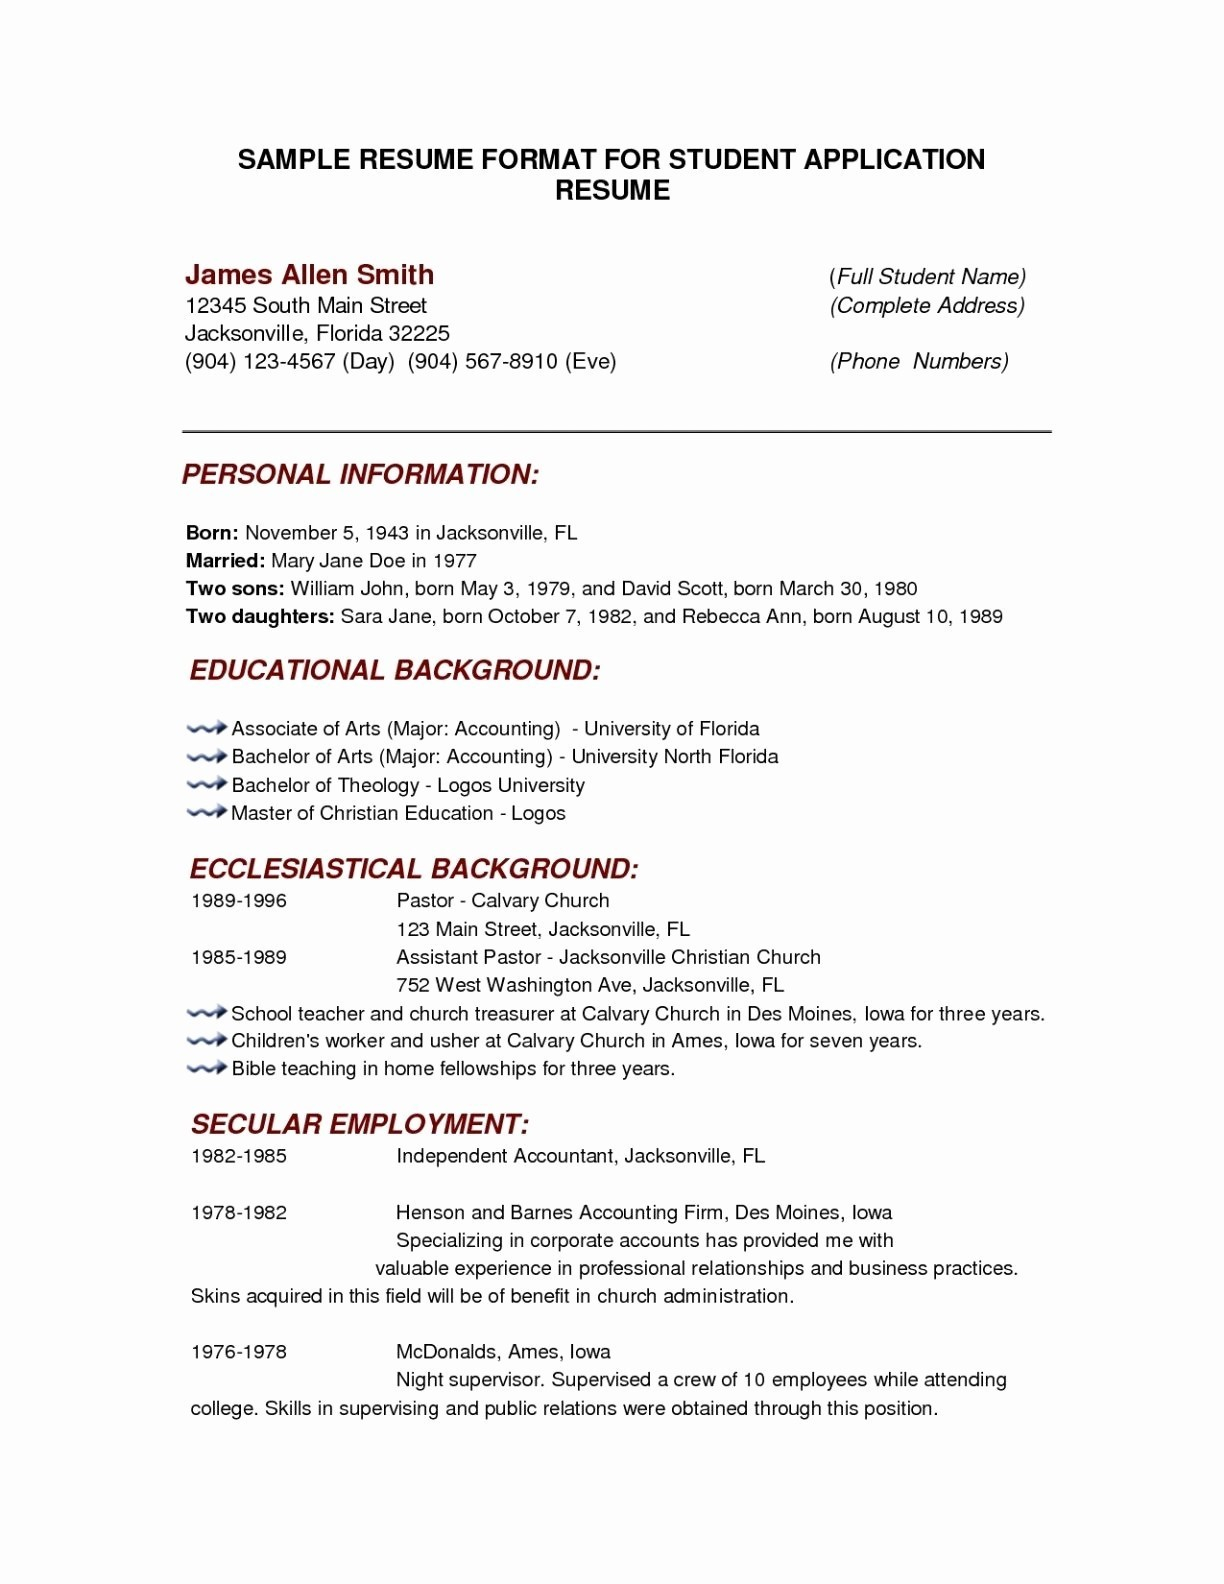 kelley resume template example-Resume Format For Mba Save Mba Resume Sample New Best Kelley School Business Resume Template 10-s